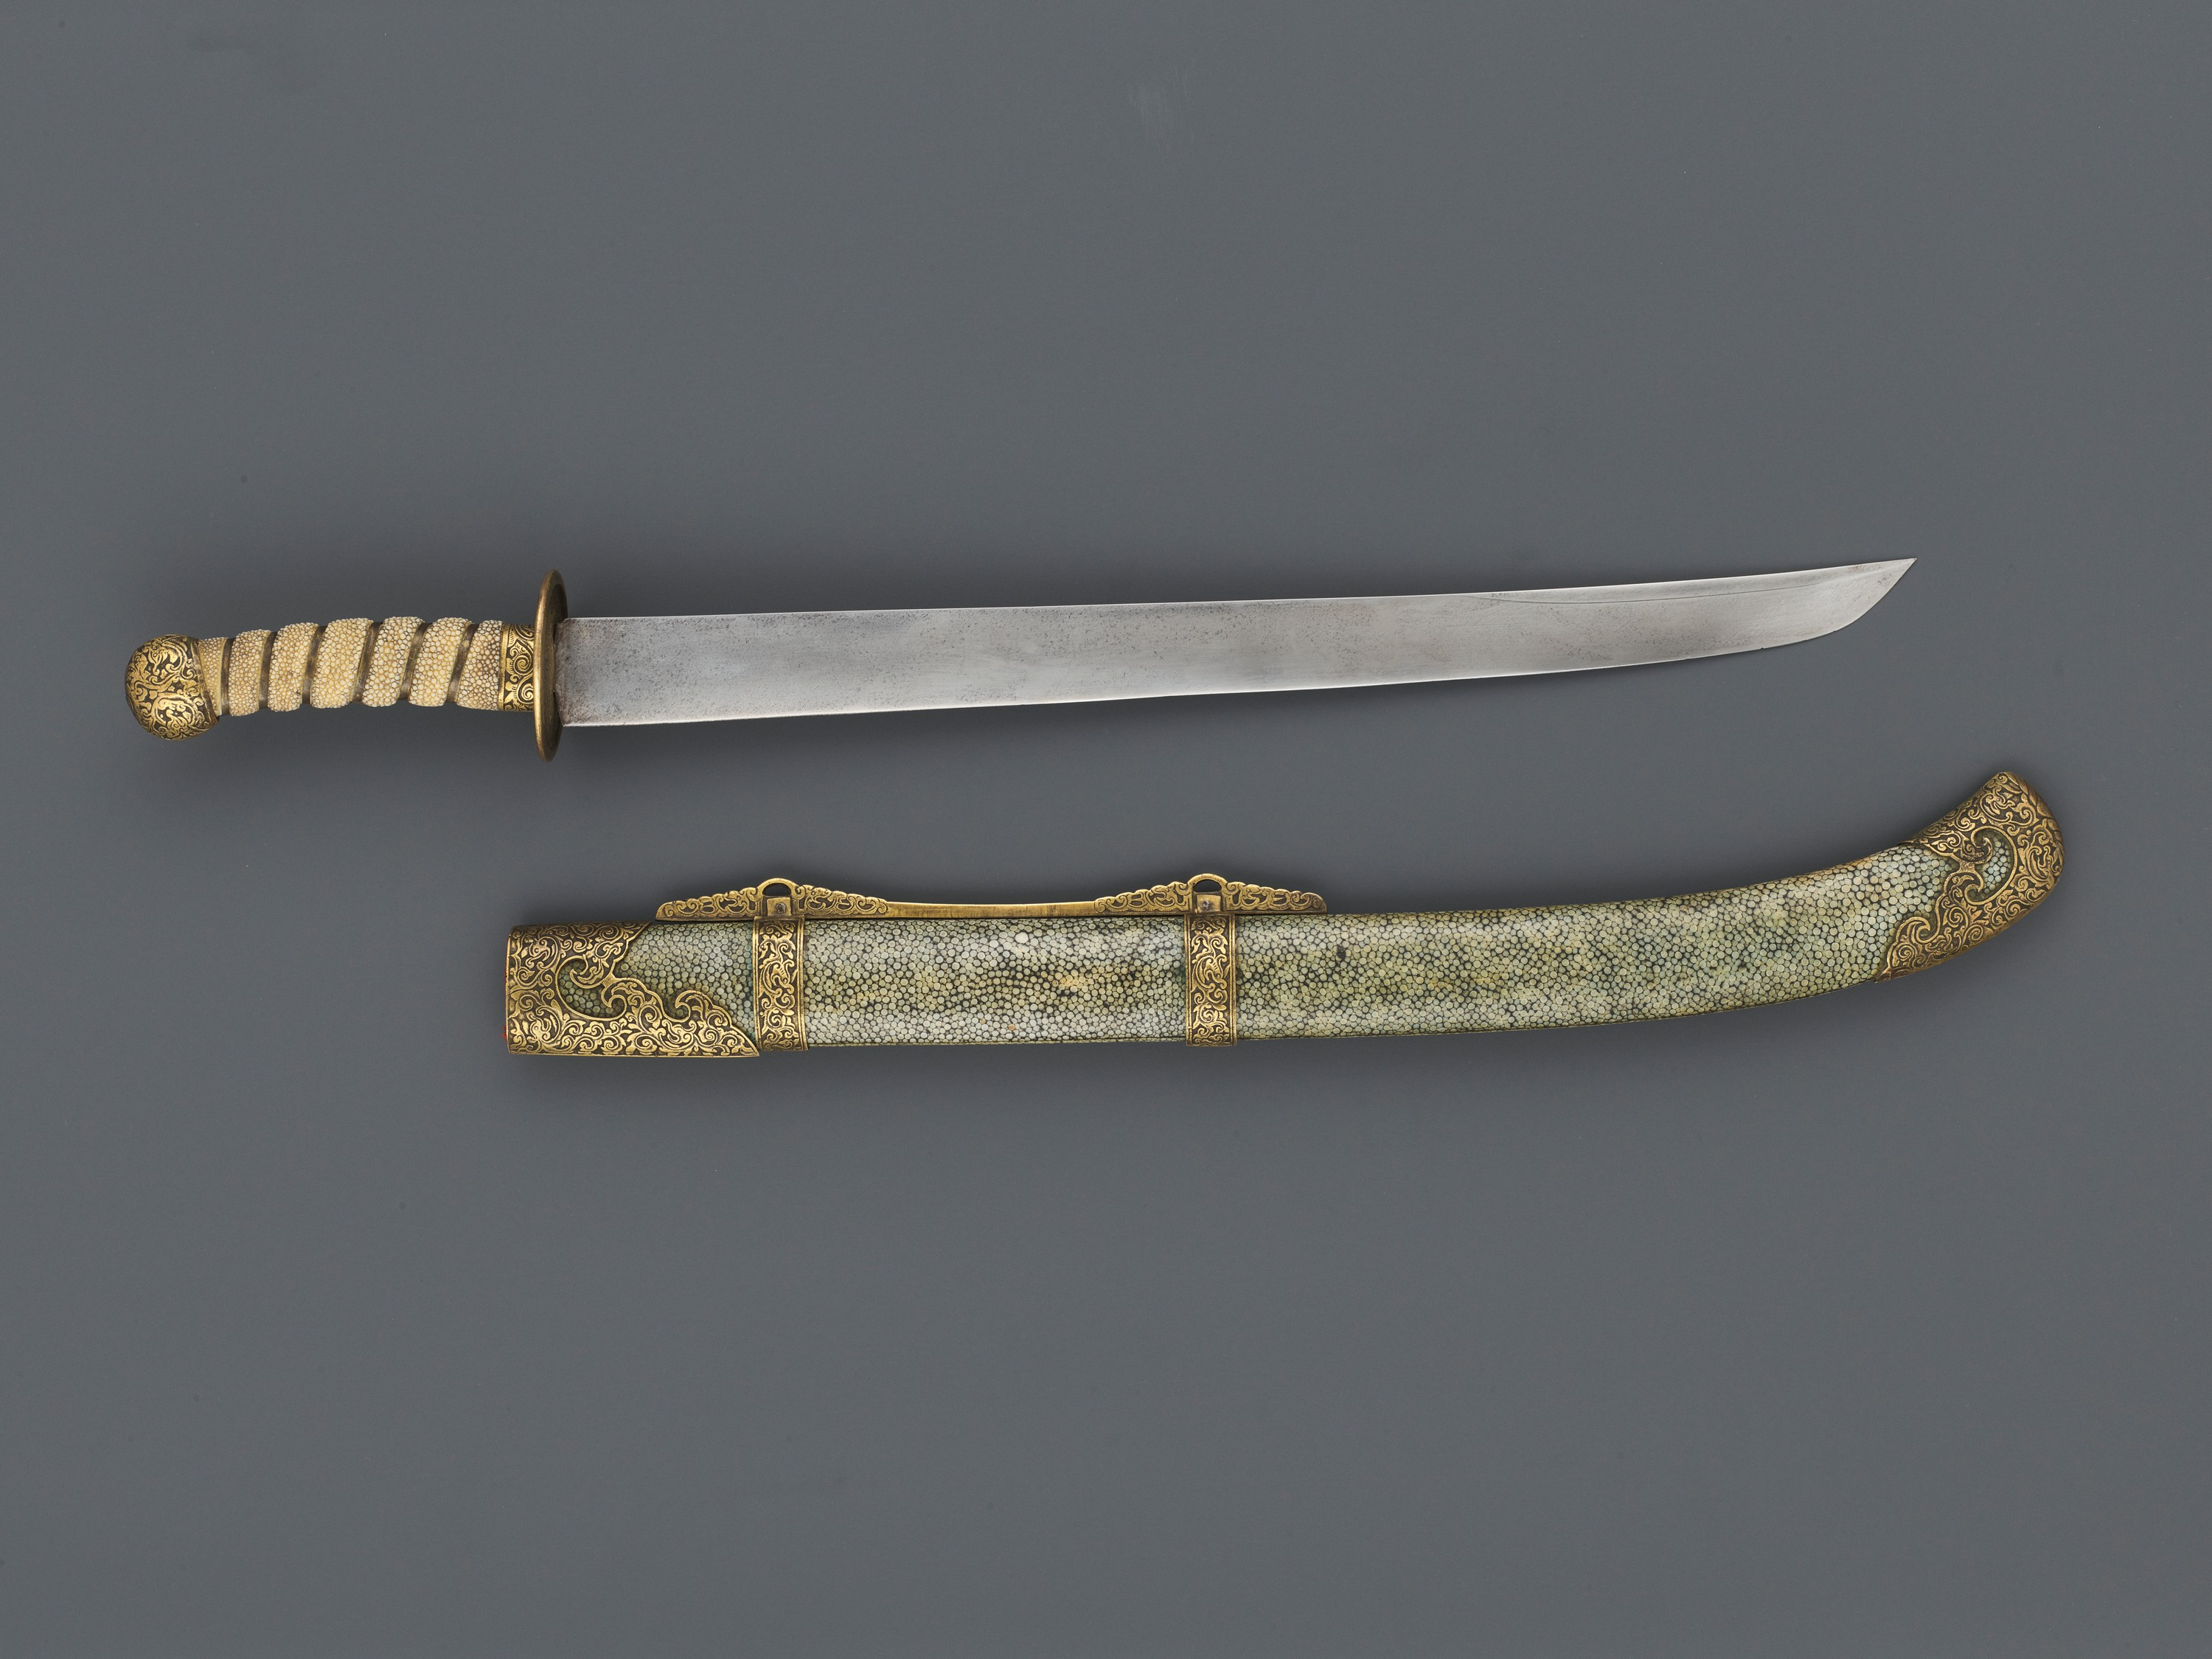 A CEREMONIAL SWORD AND SCABBARD, QING DYNASTY